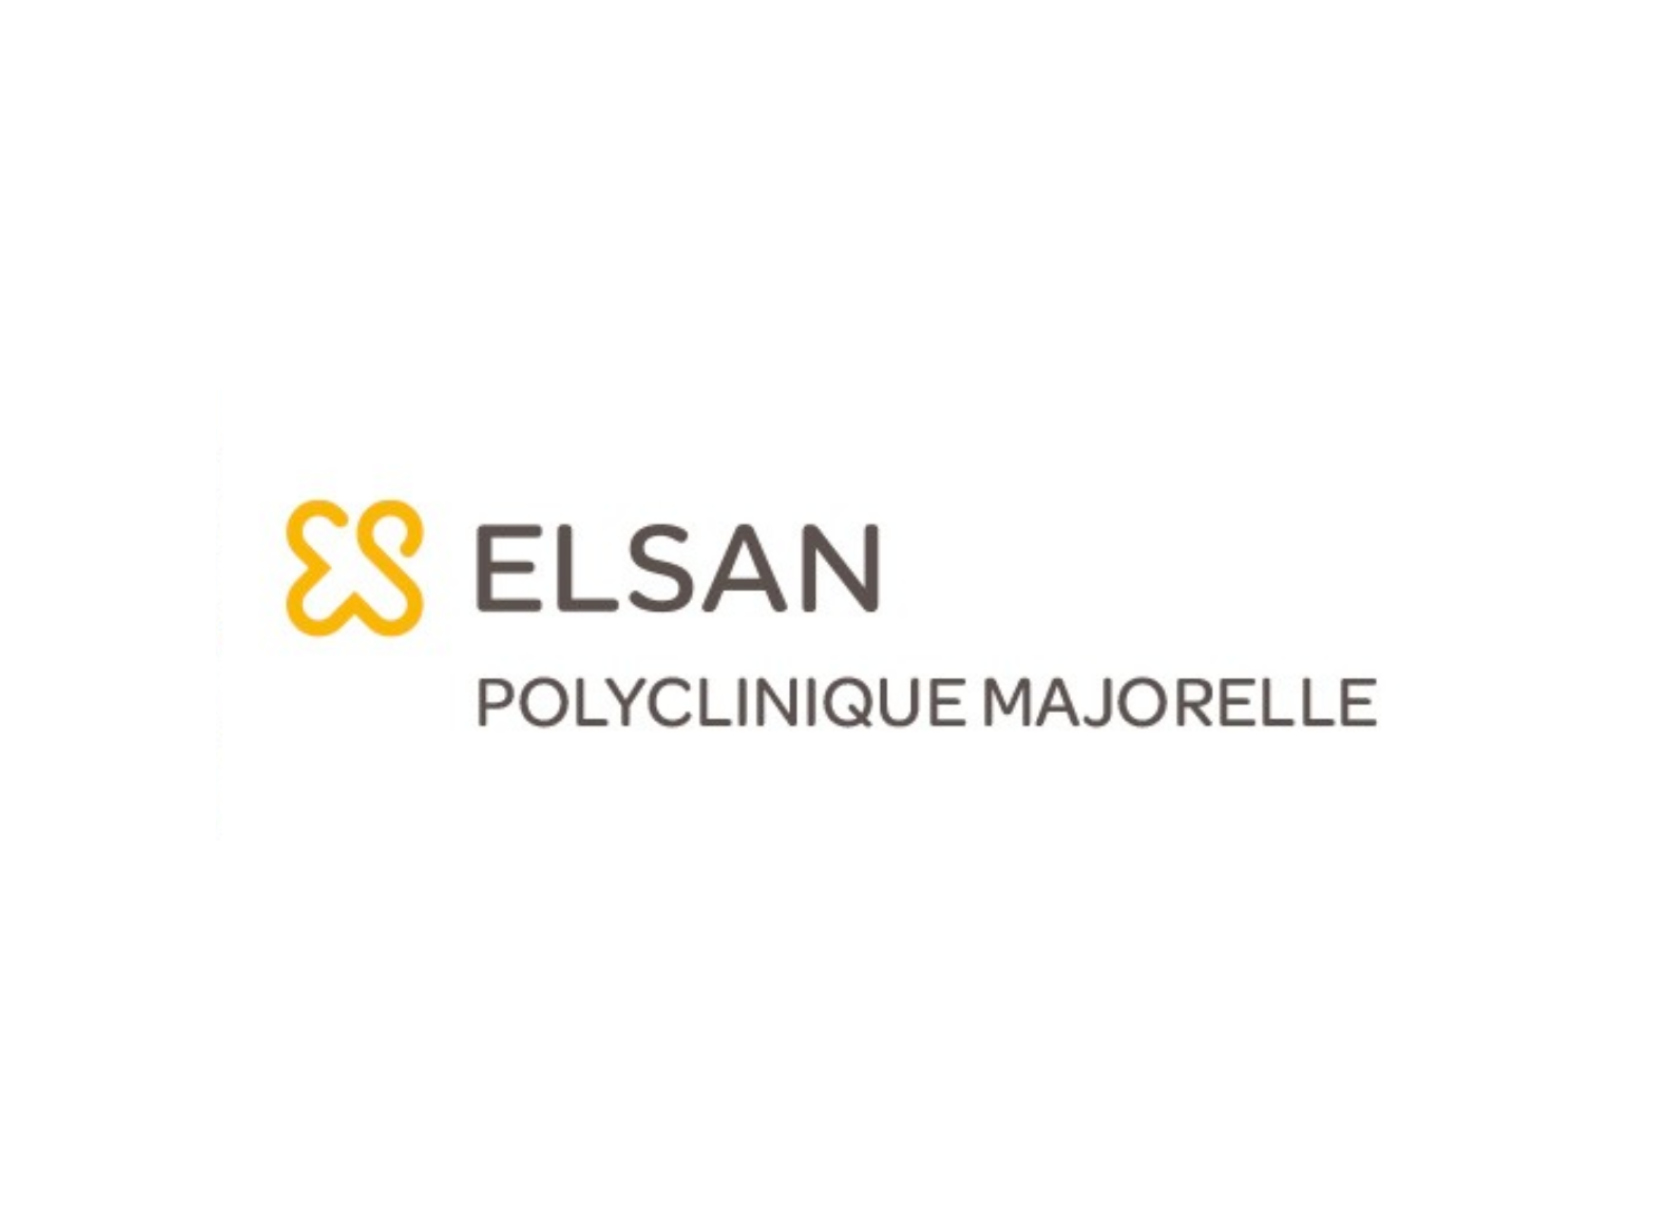 Logo Polyclinique Majorelle - ELSAN